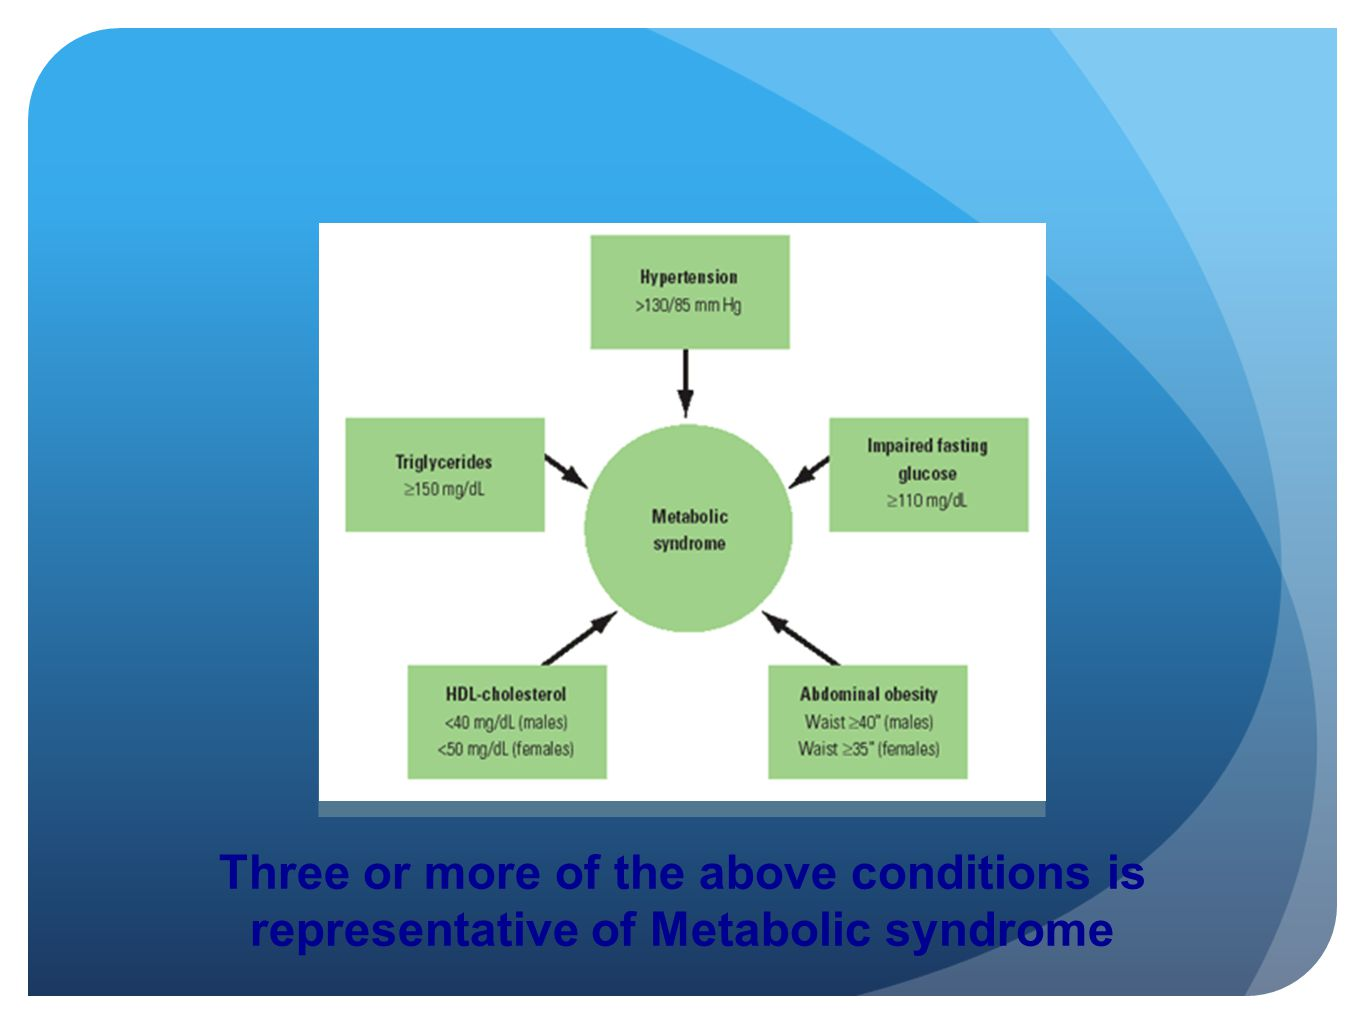 Three or more of the above conditions is representative of Metabolic syndrome